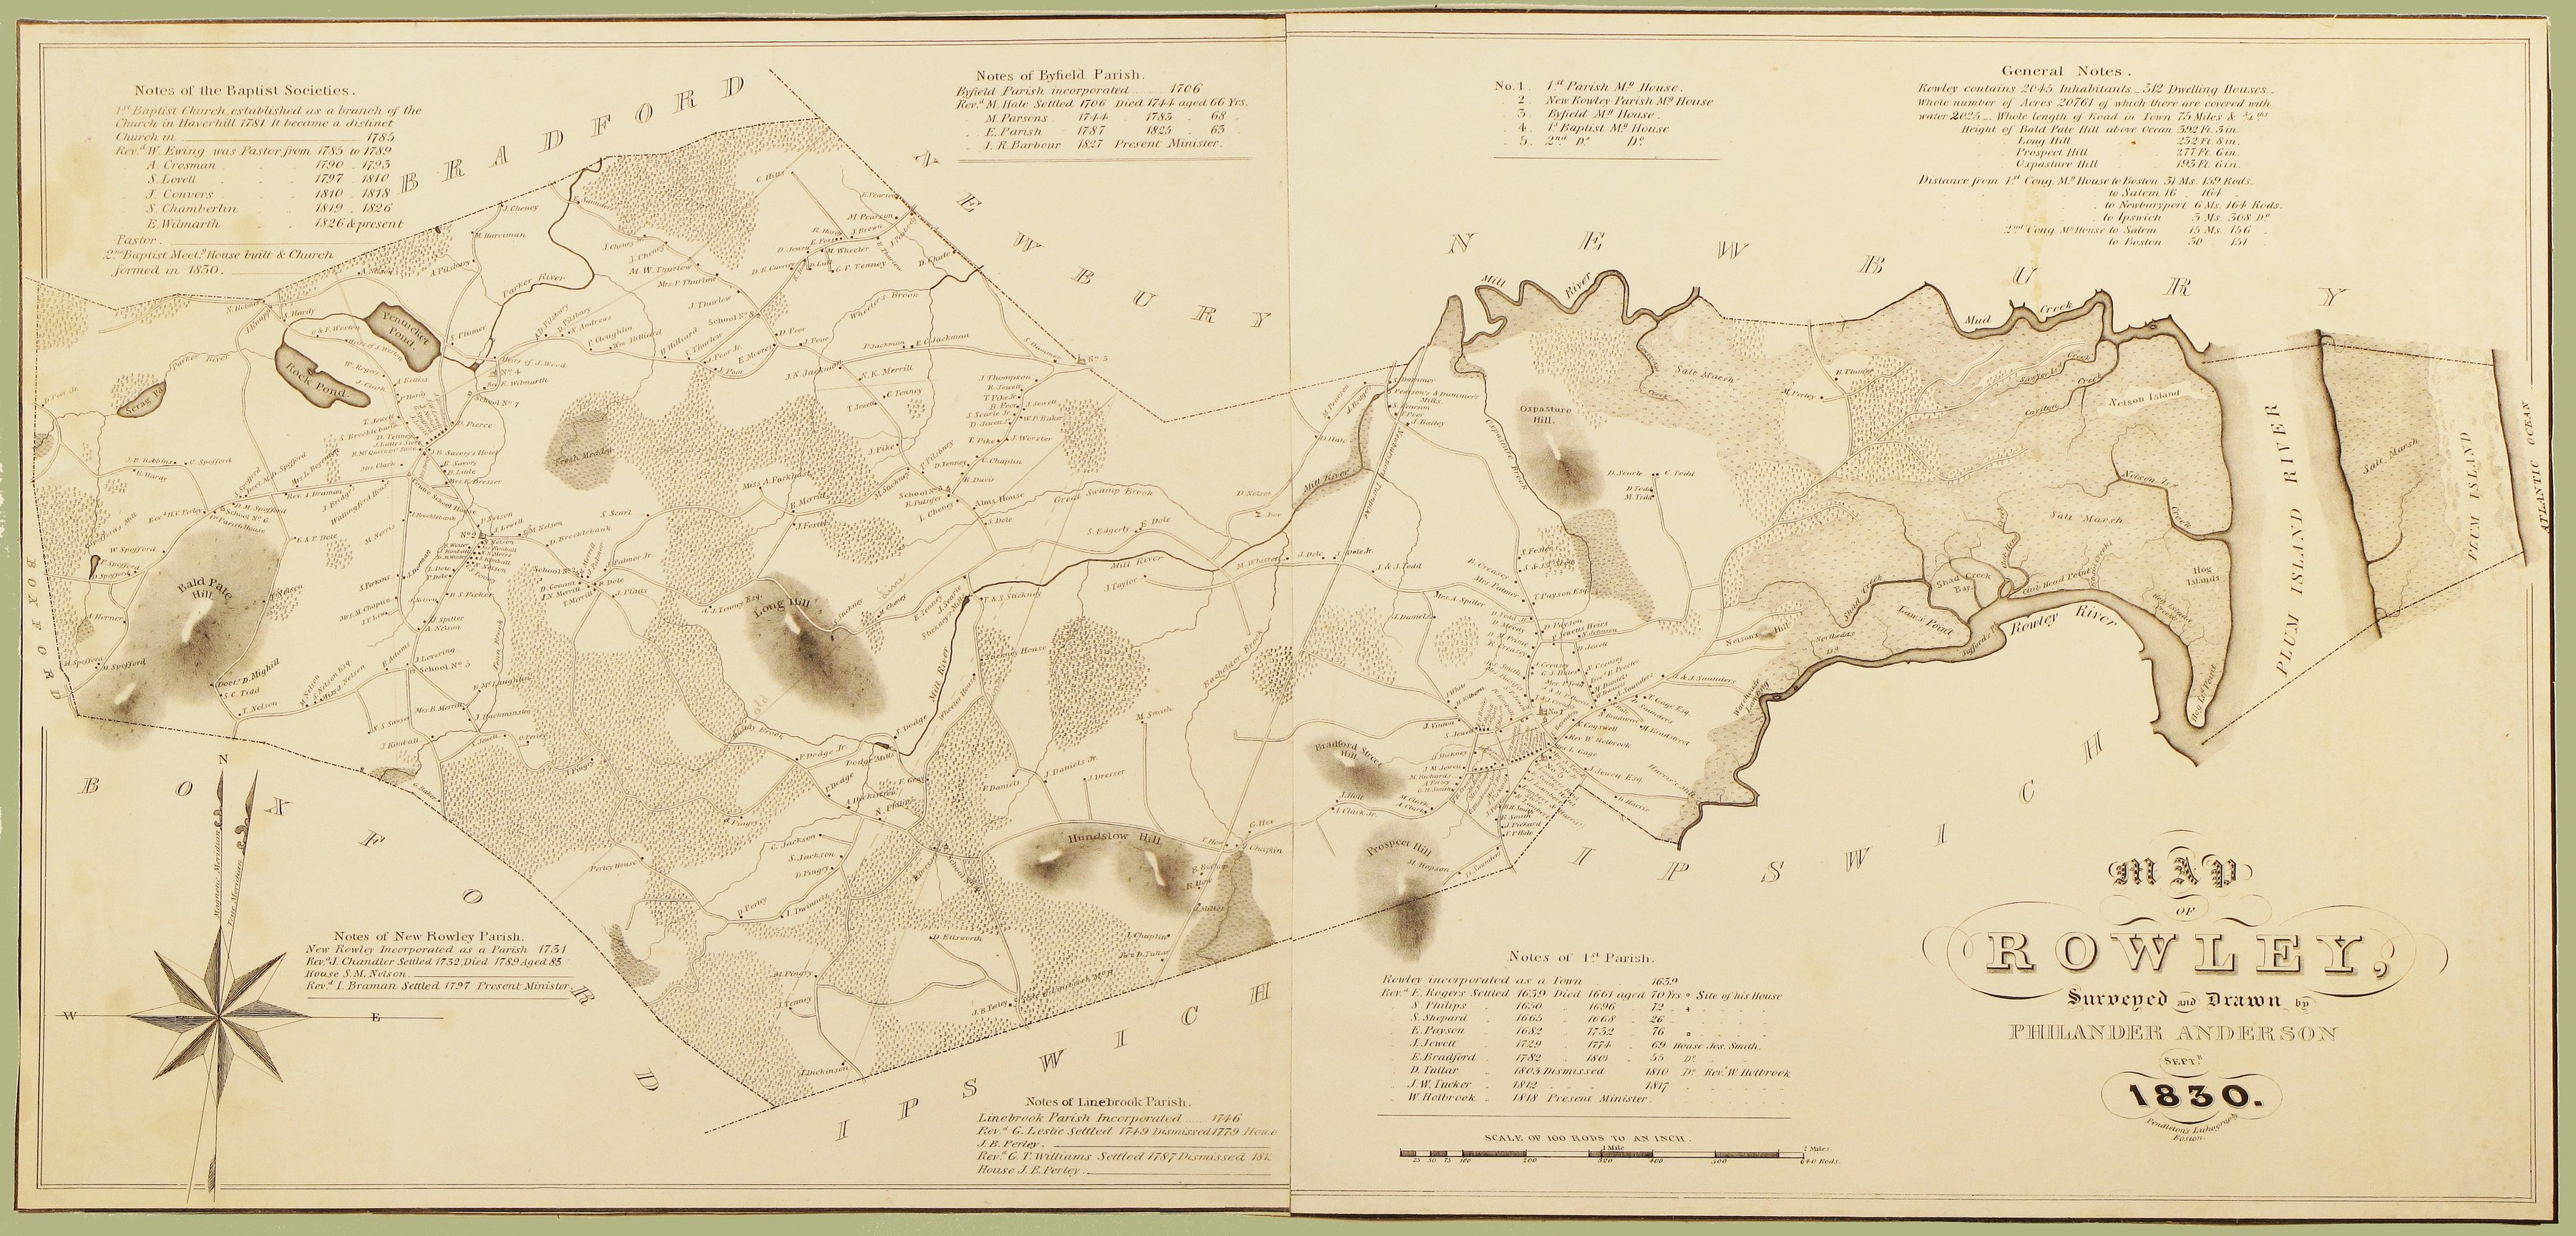 The First Printed Map Of Rowley Mass Rare Antique Maps - Mass map